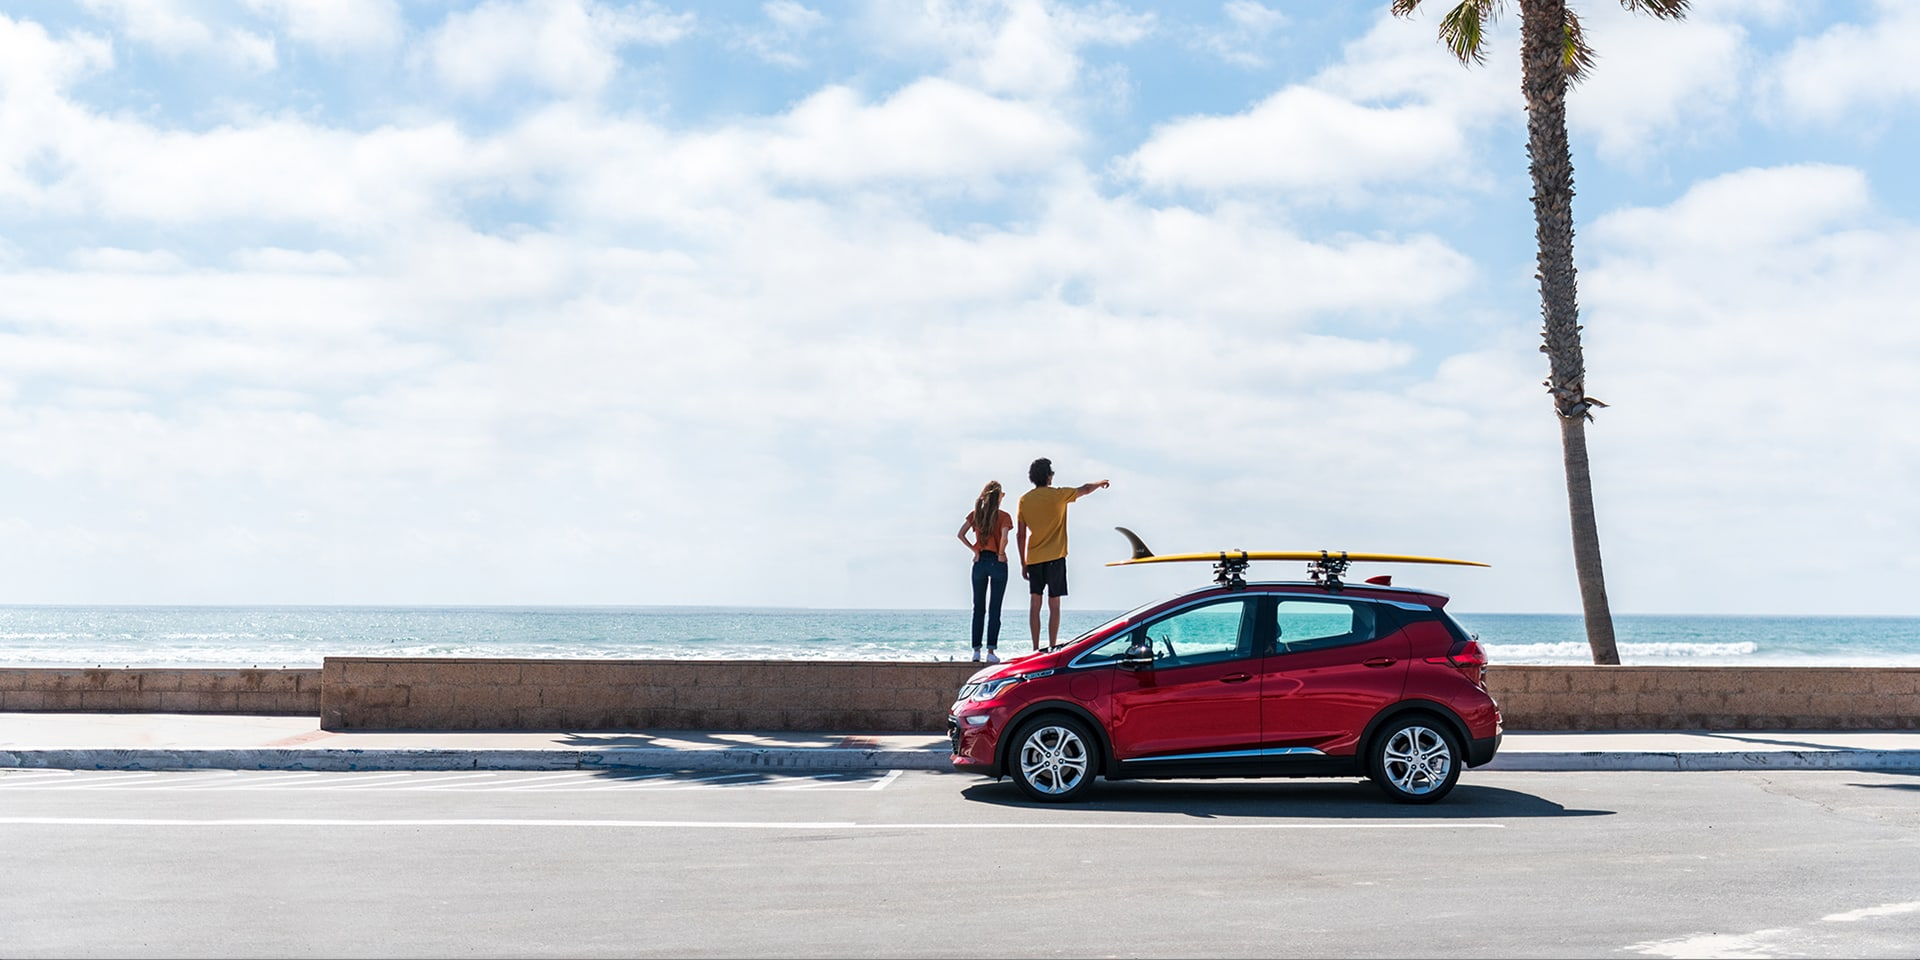 2021 Chevy Bolt parked at the beach